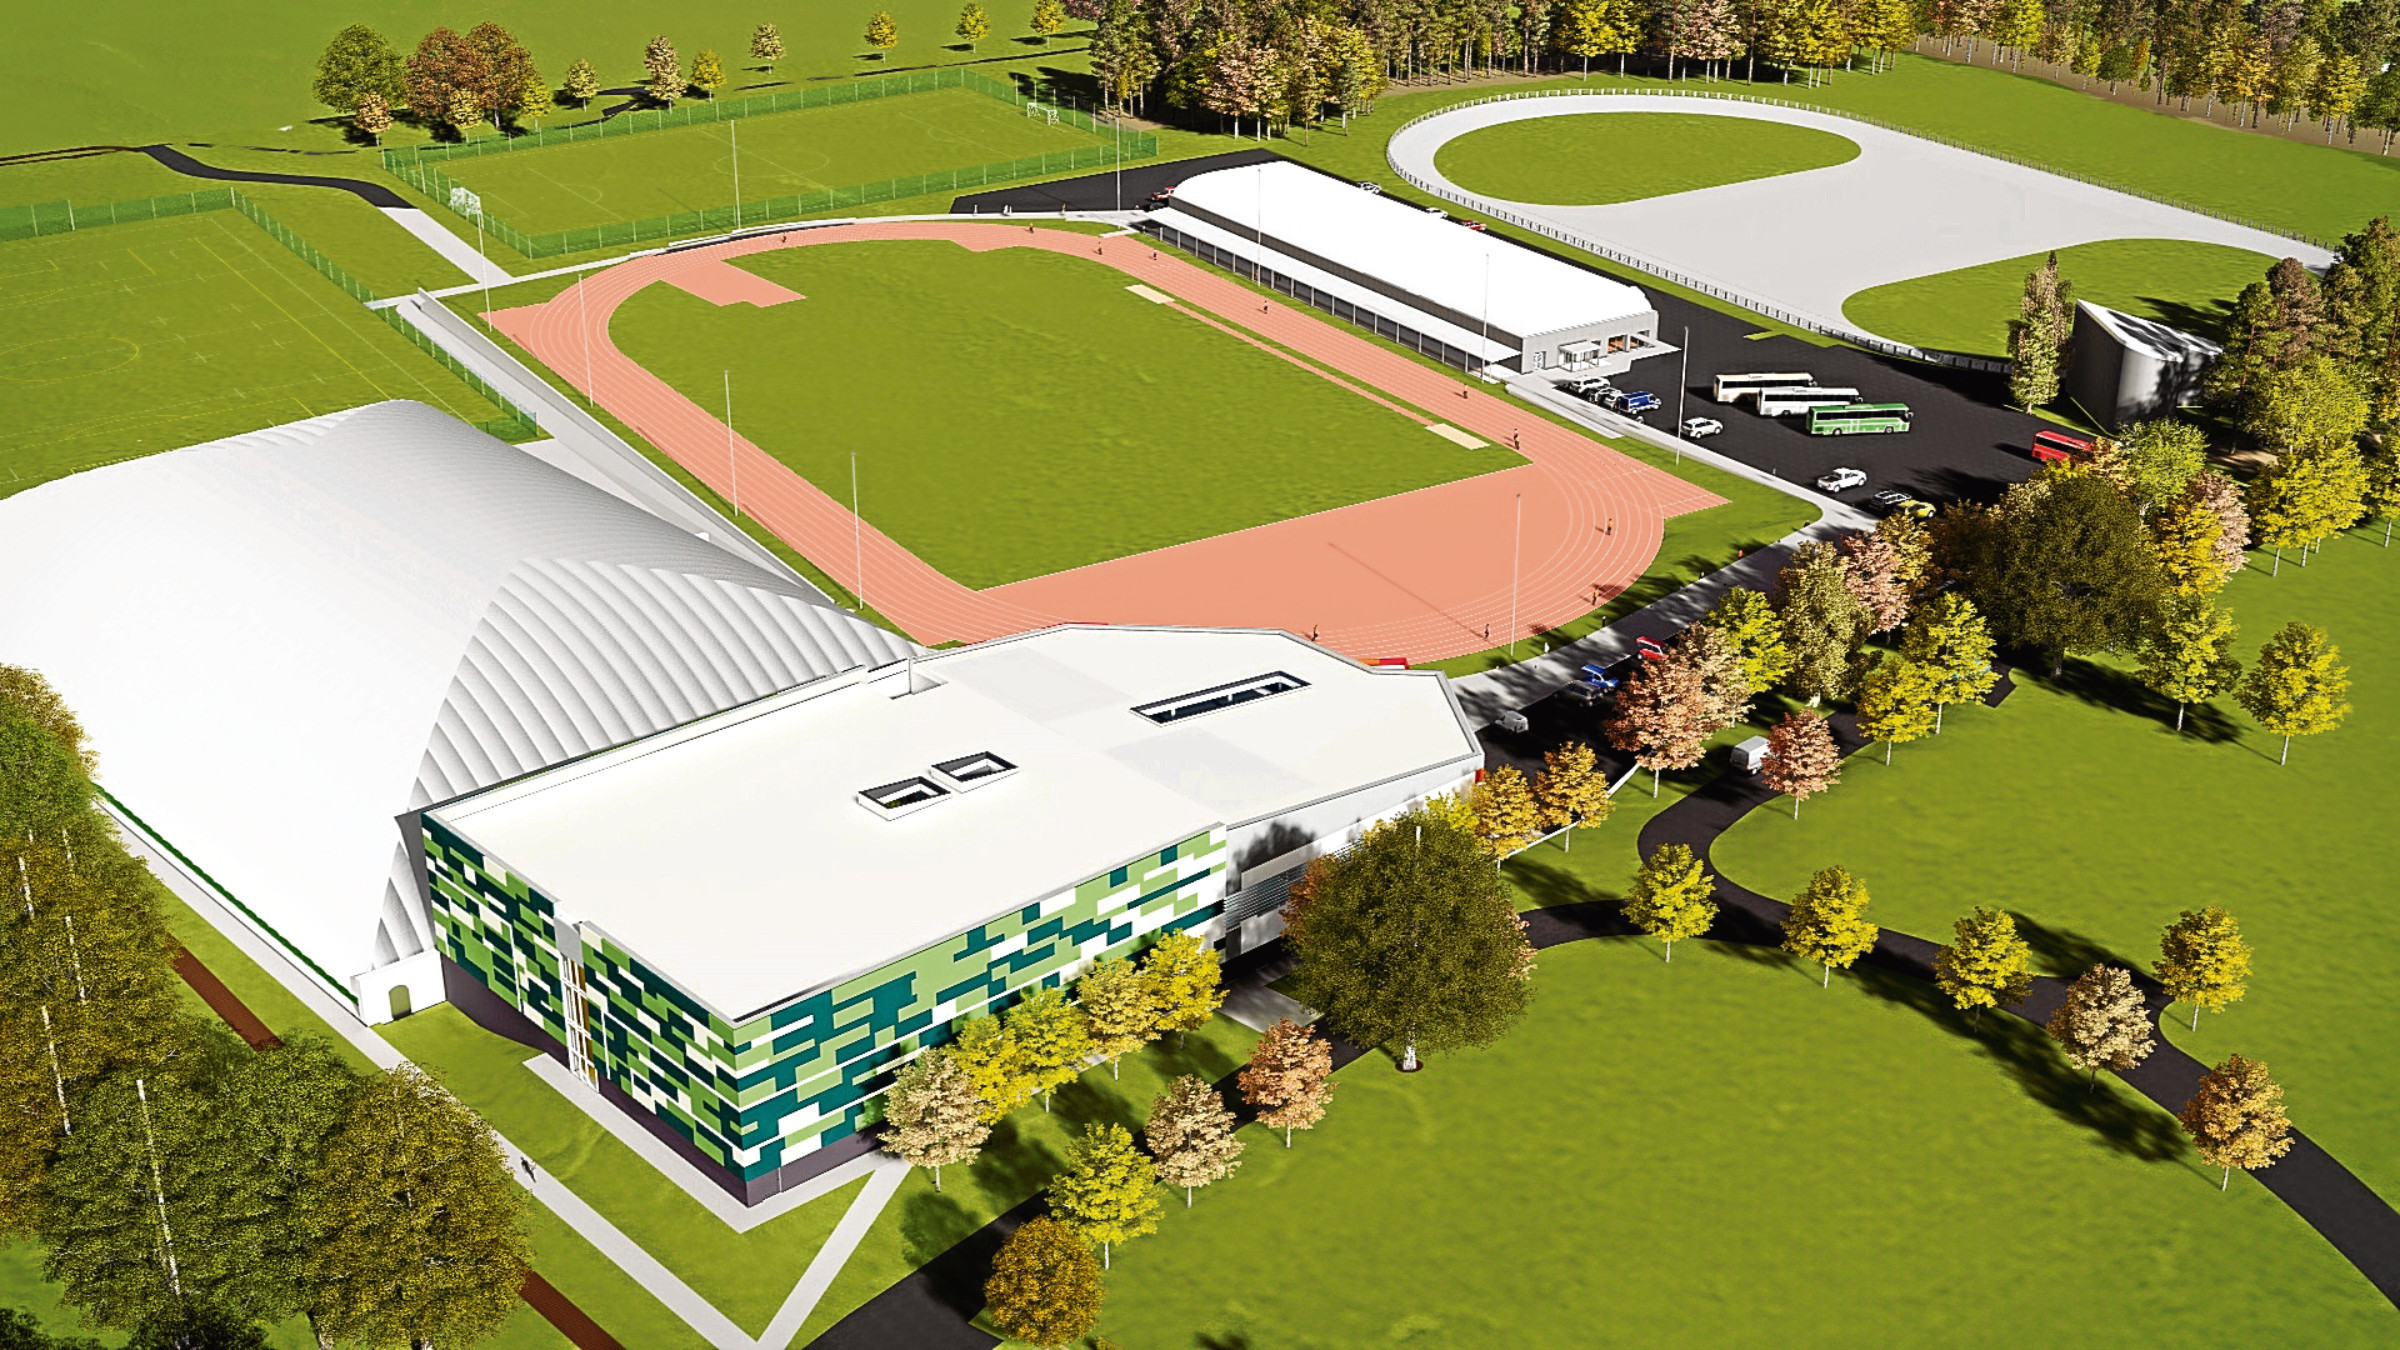 An image of the proposed £21 million regional performance facility which if approved will be built at Caird Park.